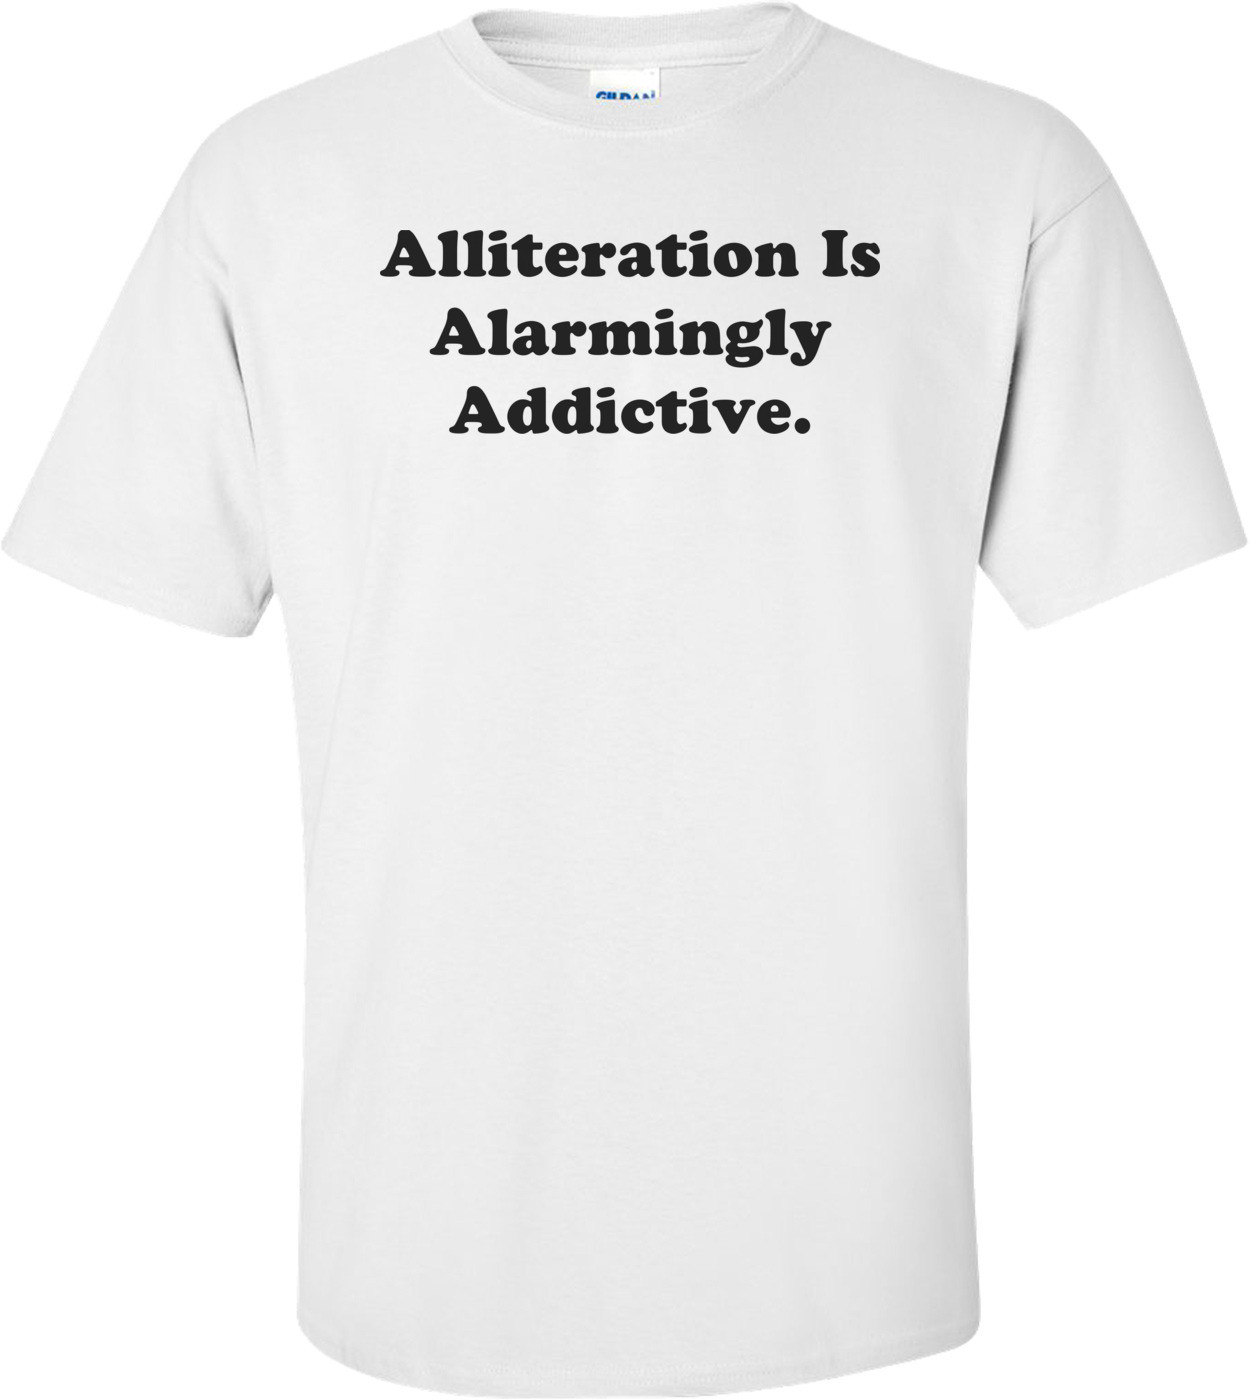 Alliteration Is Alarmingly Addictive. Shirt